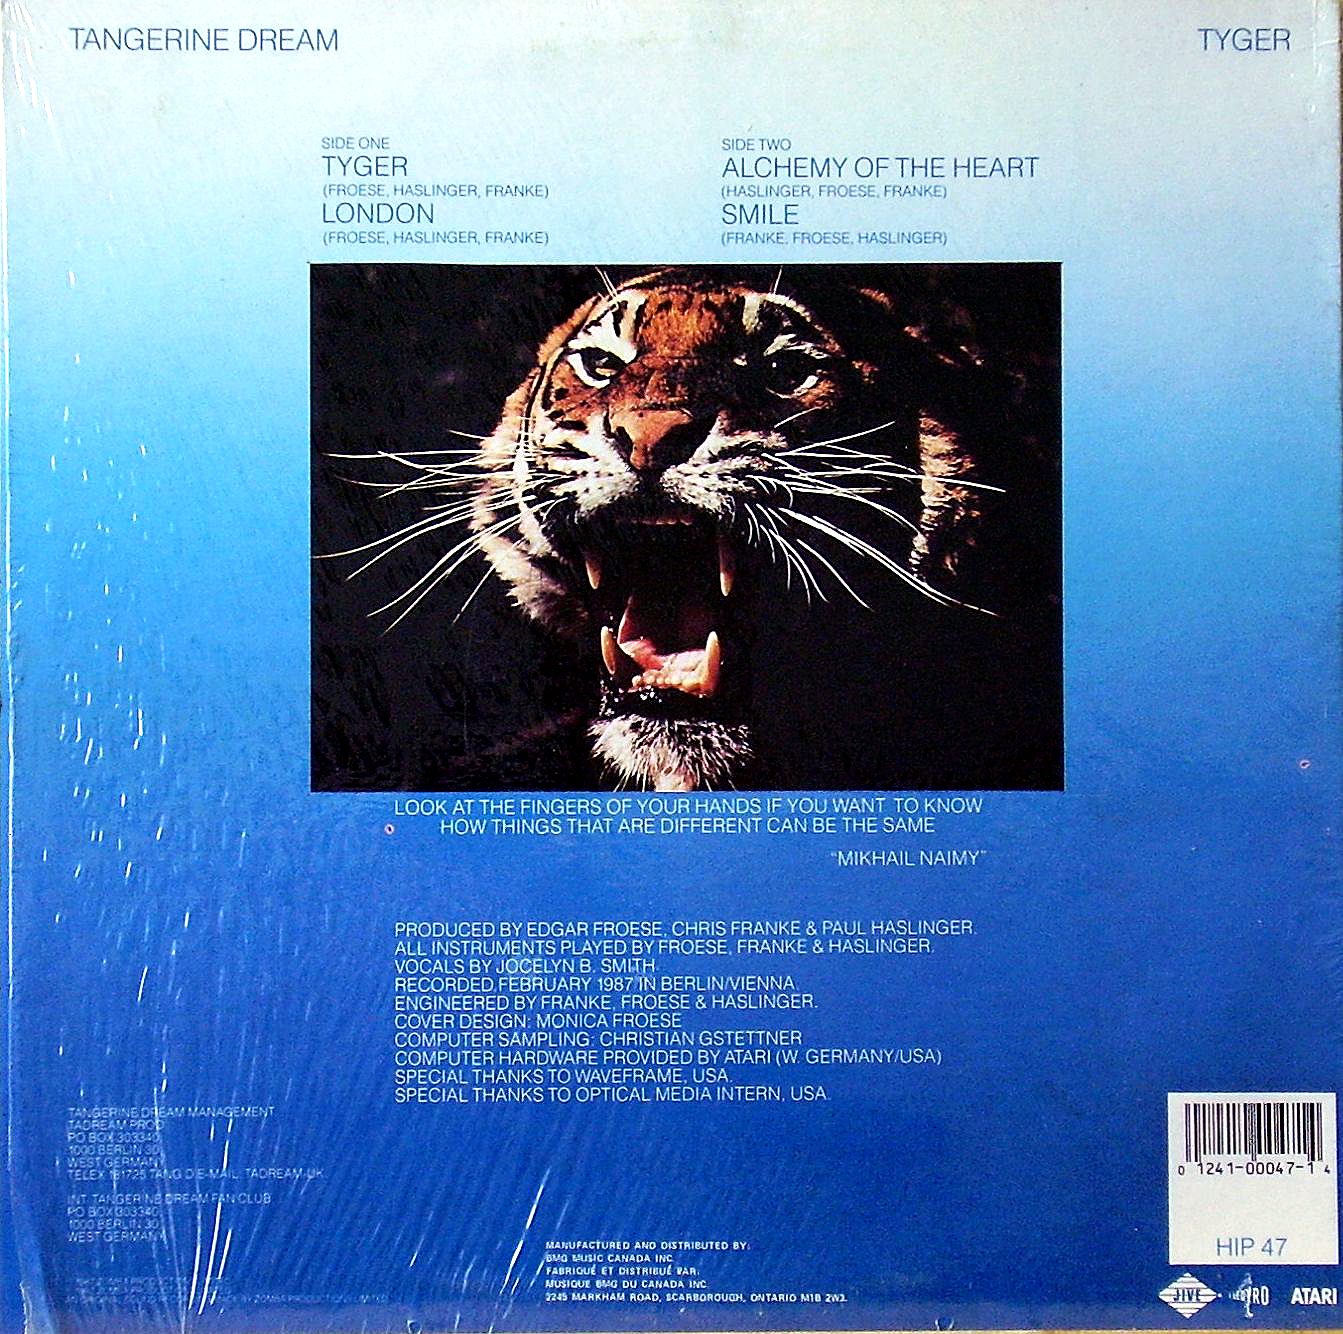 тыл-оригинал-TANGERINE DREAM-TYGER-1987